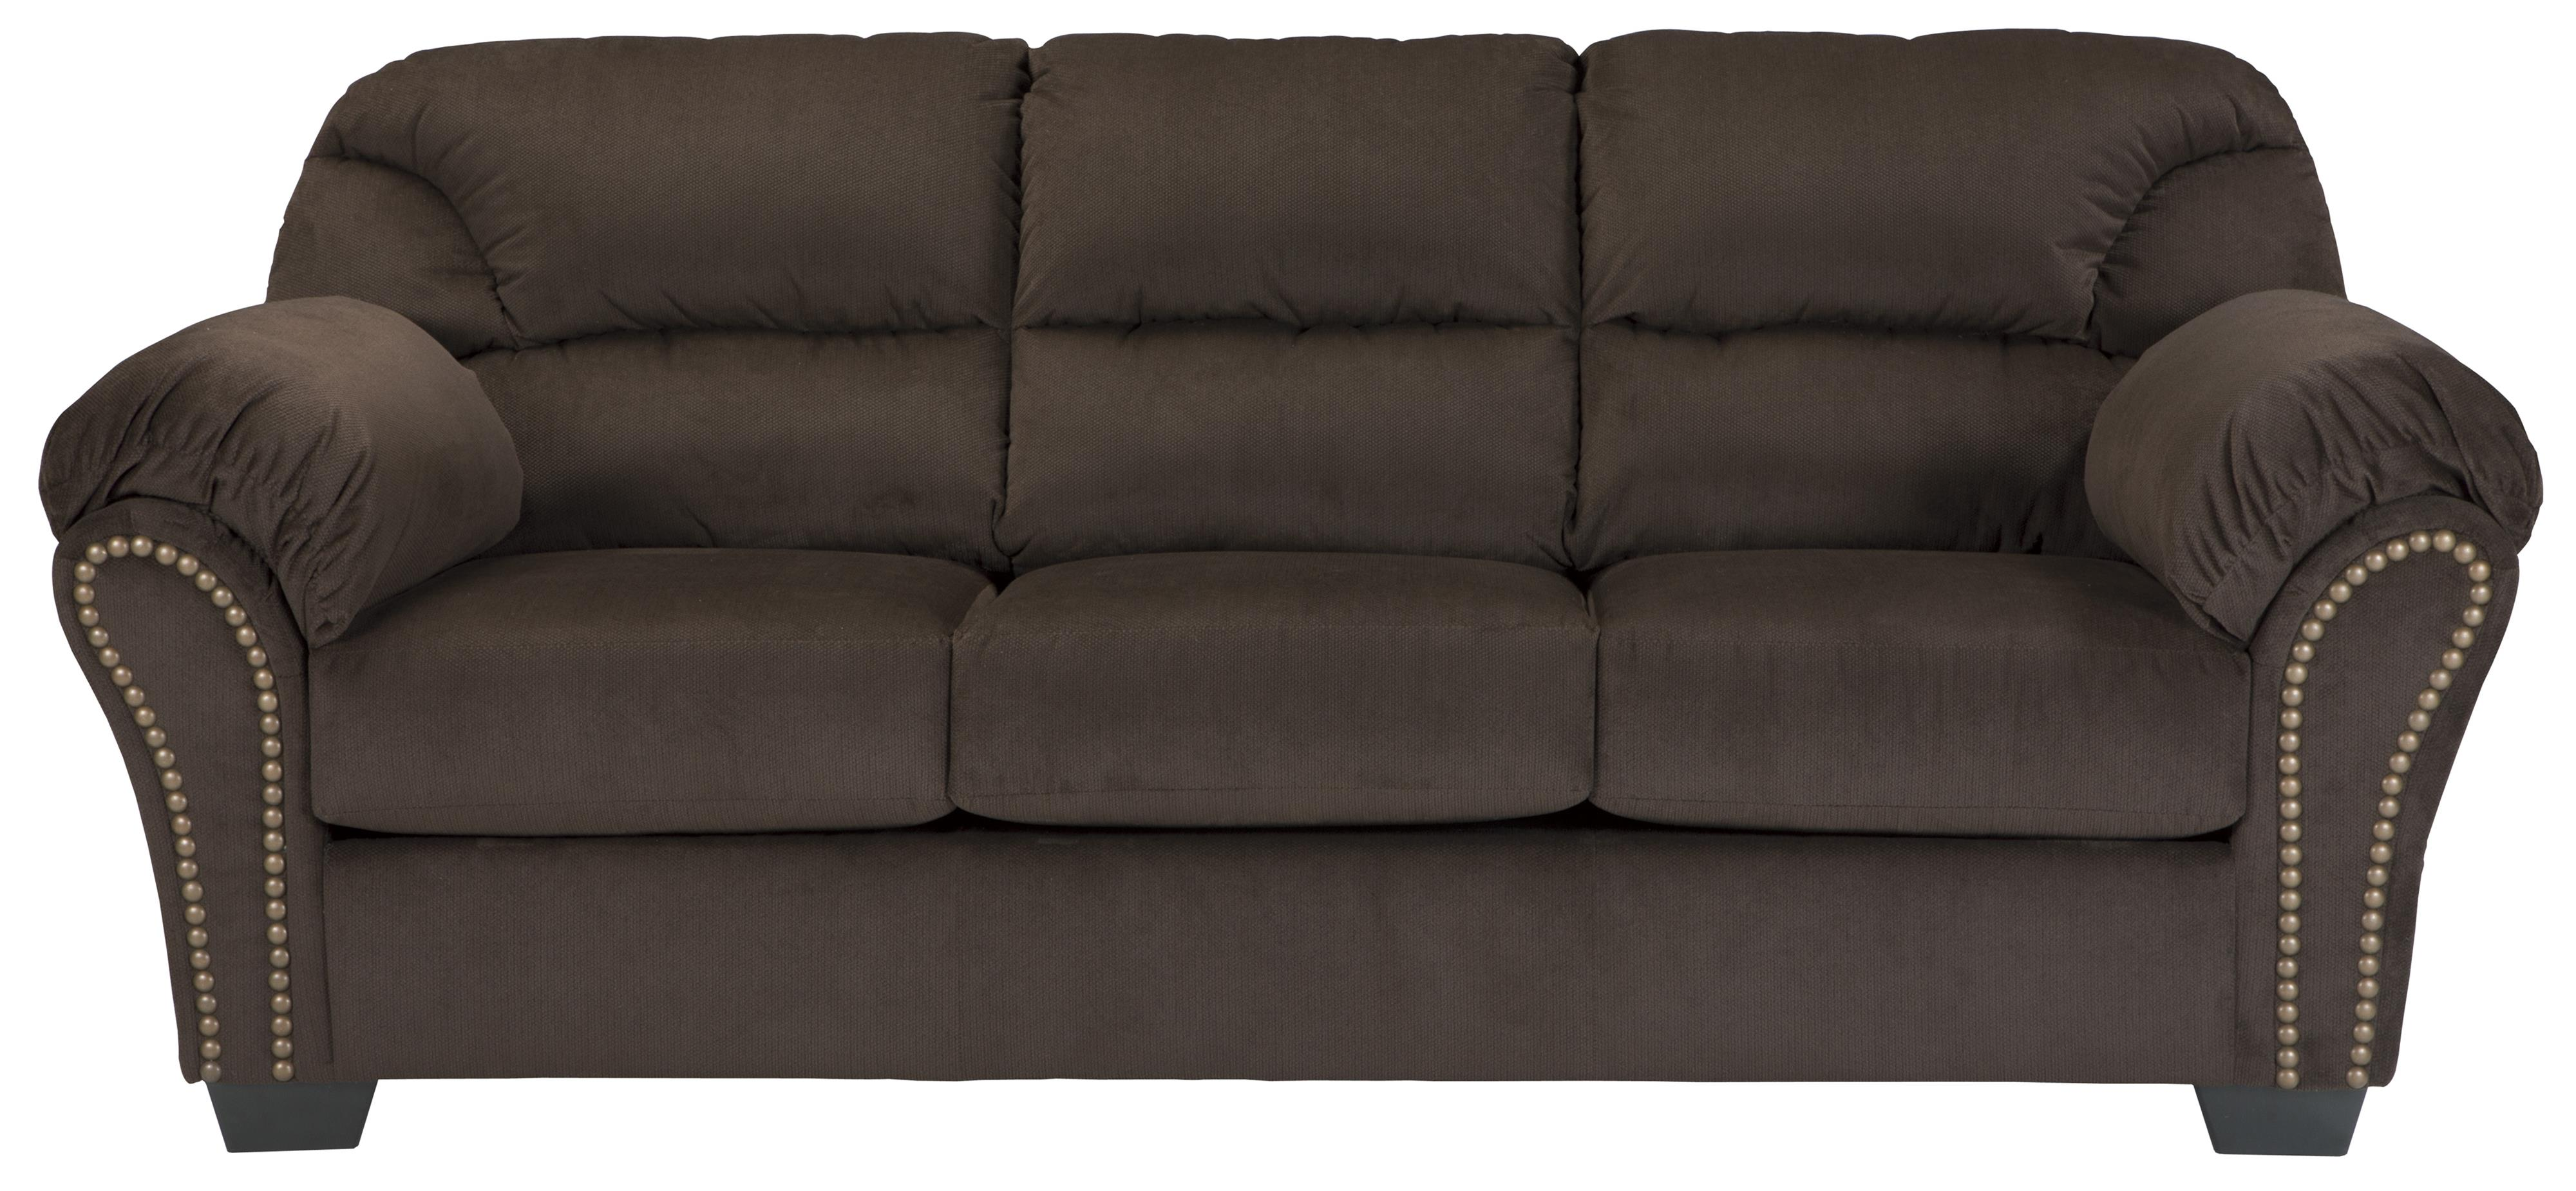 Signature Design by Ashley Kinlock Sofa - Item Number: 3340138